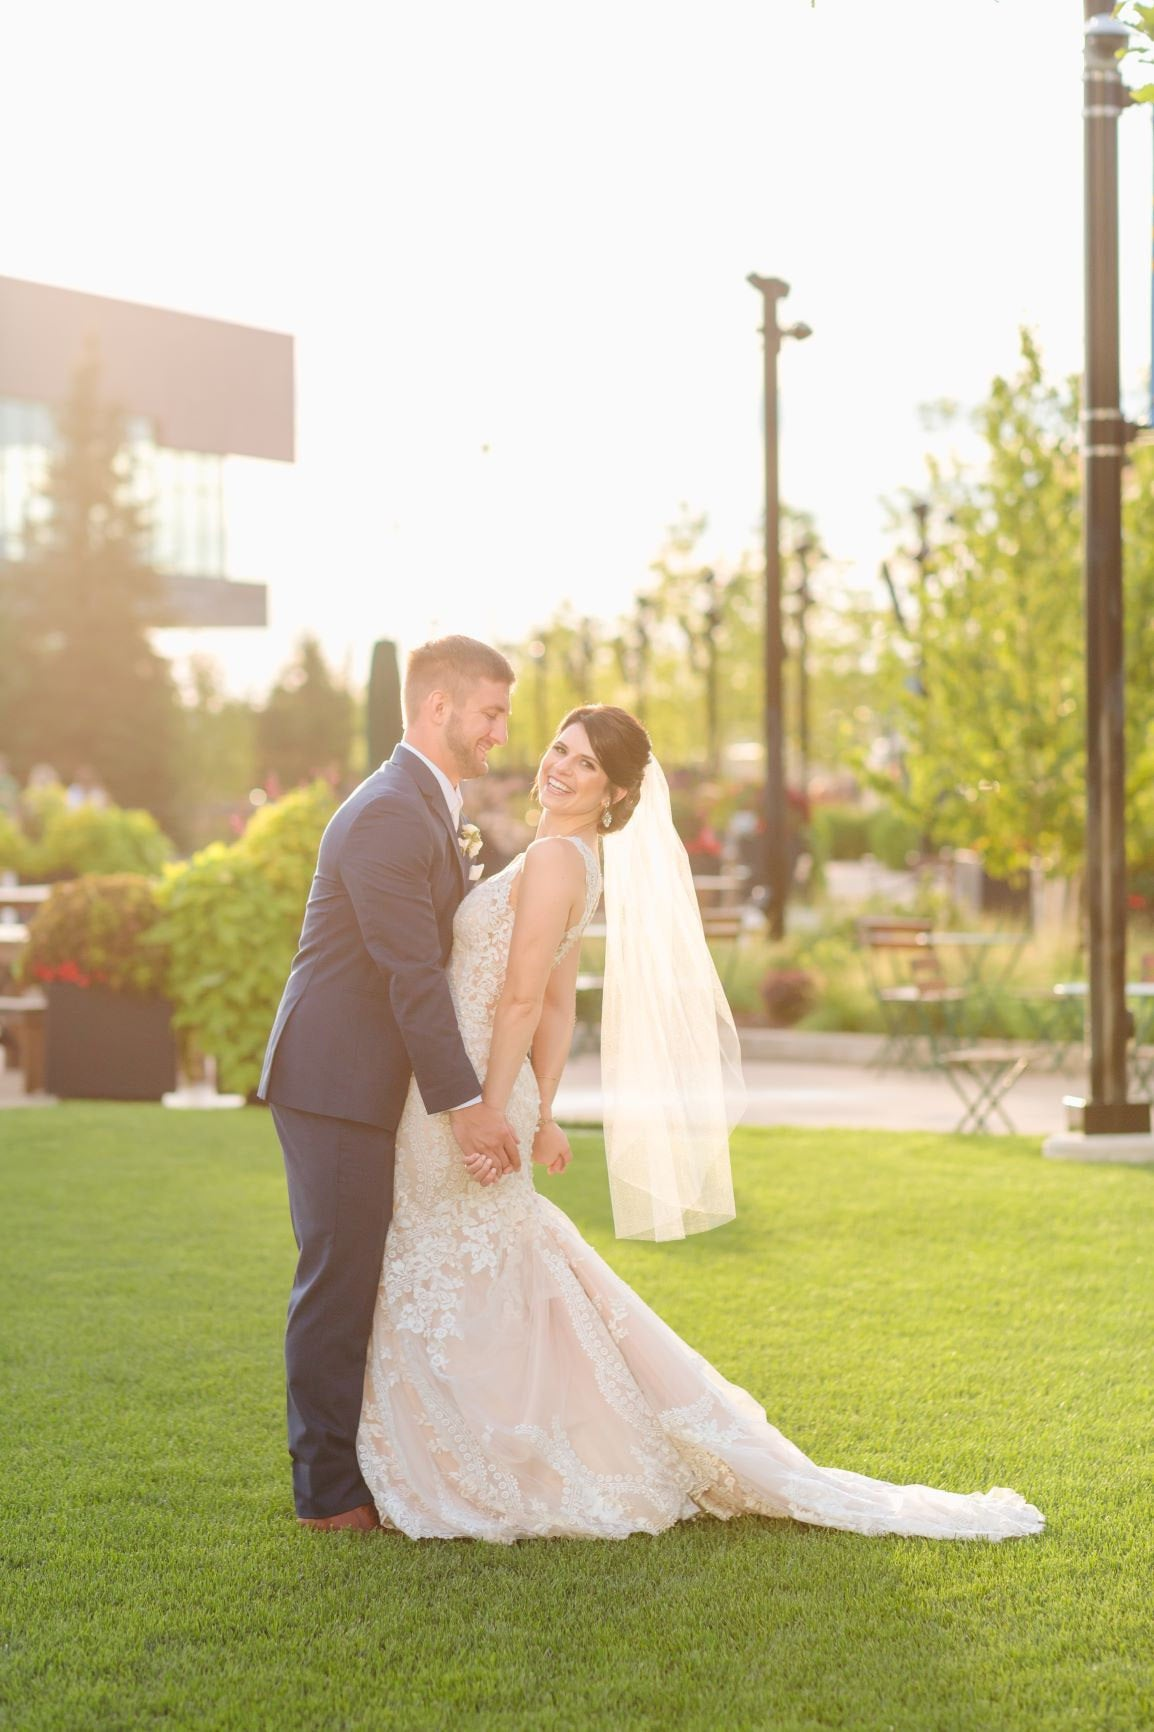 Romantic Wedding Photo of Bride and Groom: Lace Dress and Simple Fingertip Veil by One Blushing Bride